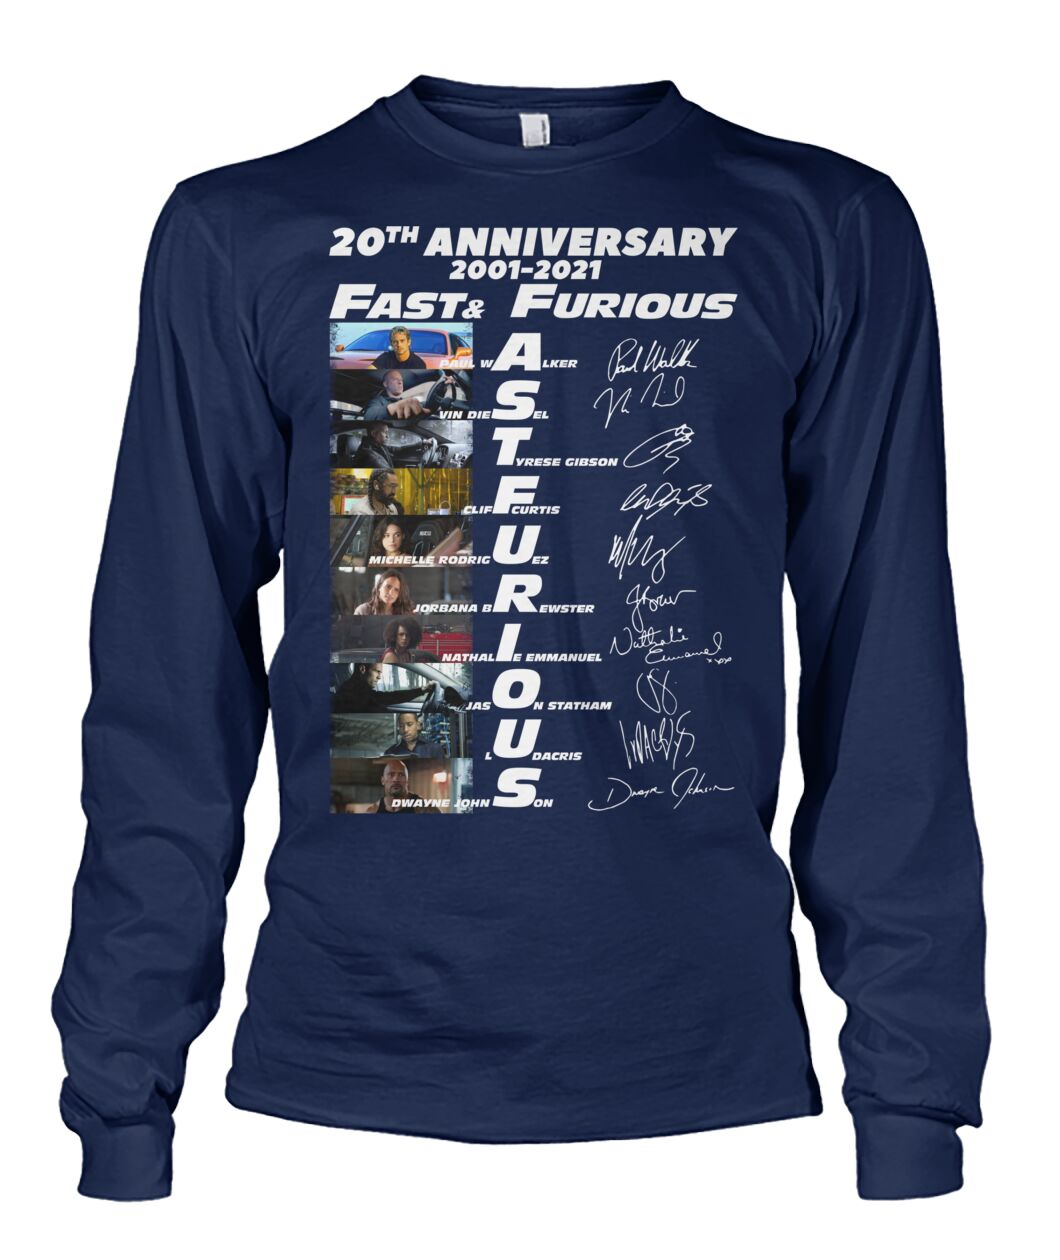 20th anniversary fast and furious long sleeve tee